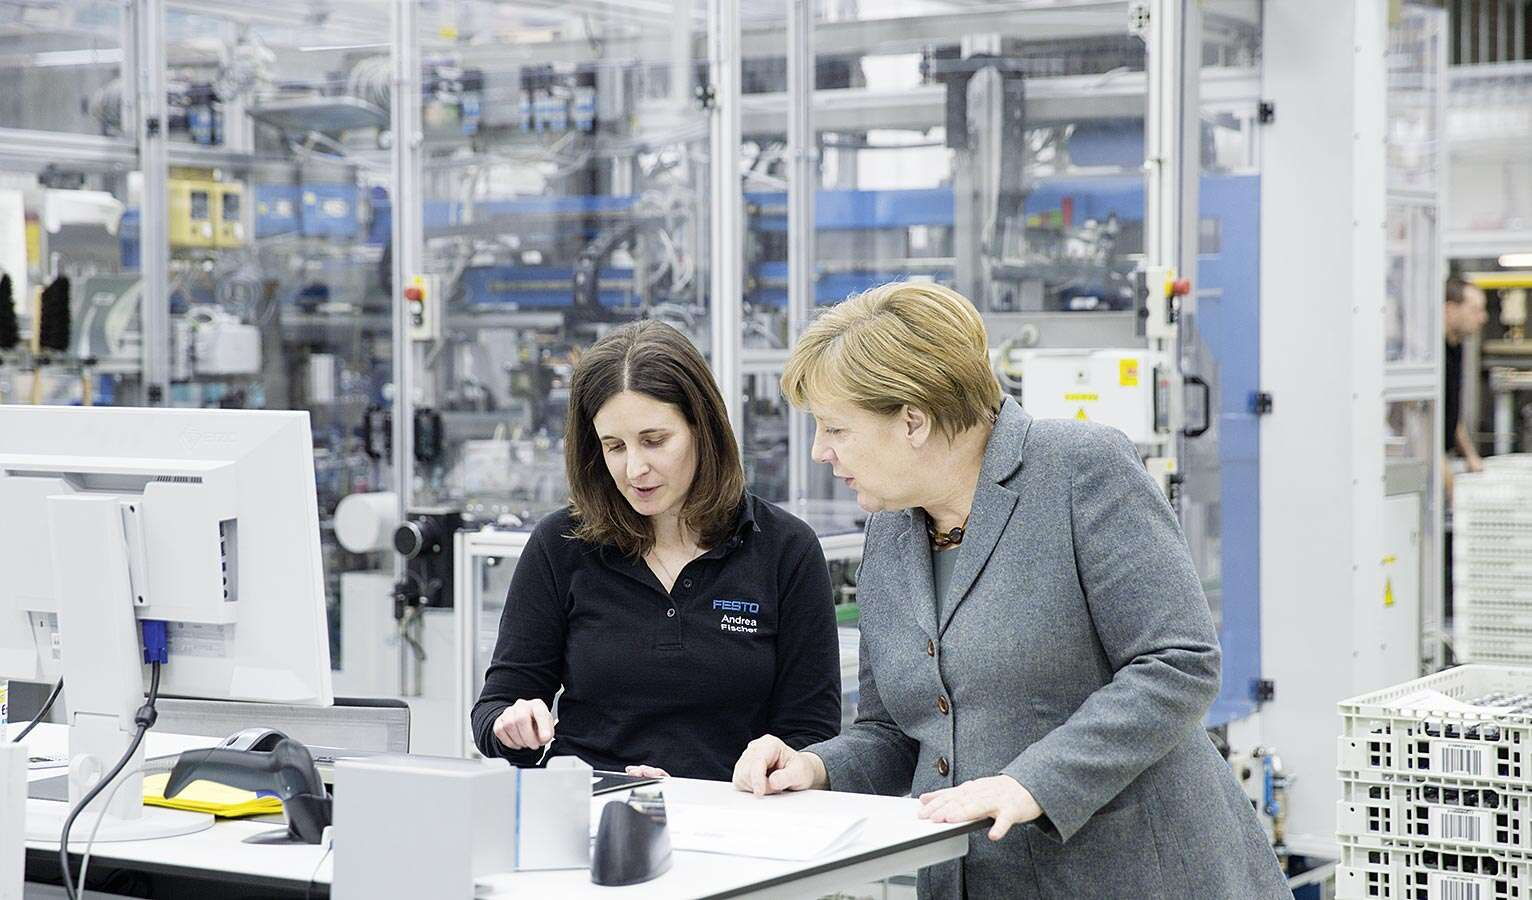 Angela Merkel visit Witnessing the production of tomorrow: German Chancellor, Dr Angela Merkel, visits the Technology